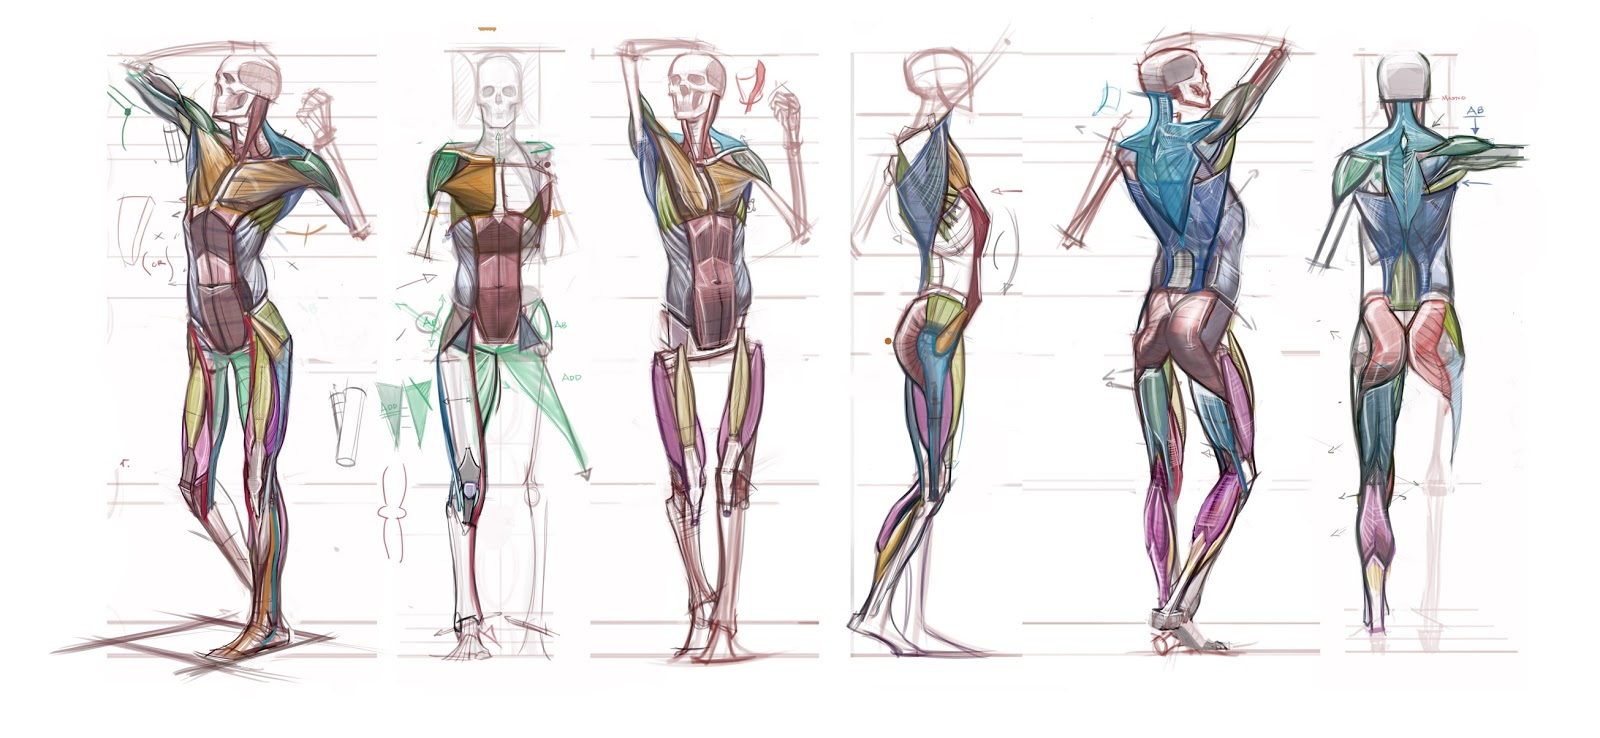 figuredrawing.info news: Anatomy lecture notes